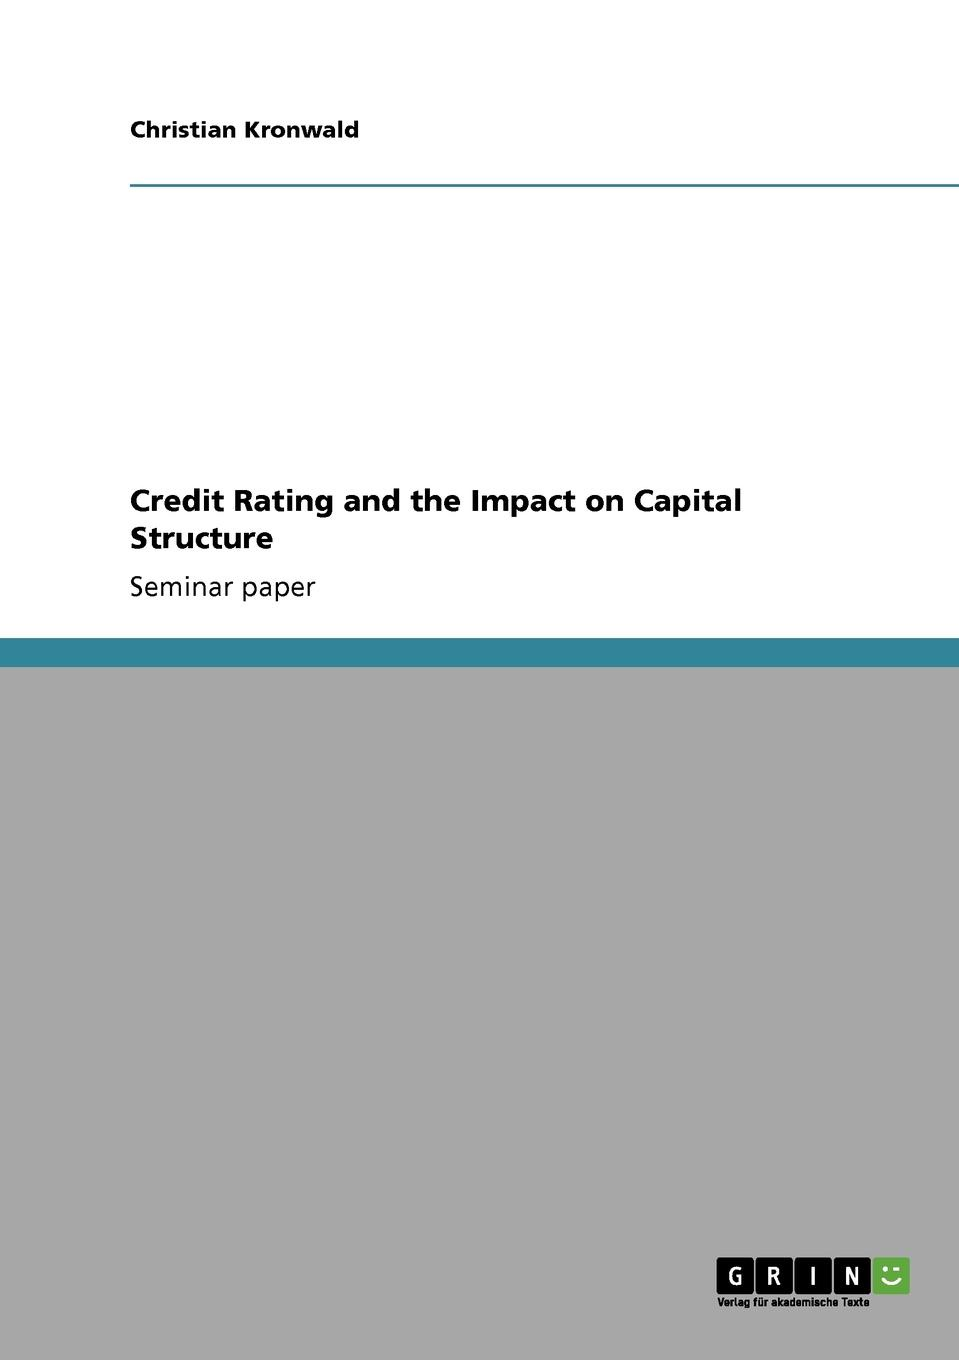 Christian Kronwald Credit Rating and the Impact on Capital Structure gerald s martin capital structure and corporate financing decisions theory evidence and practice